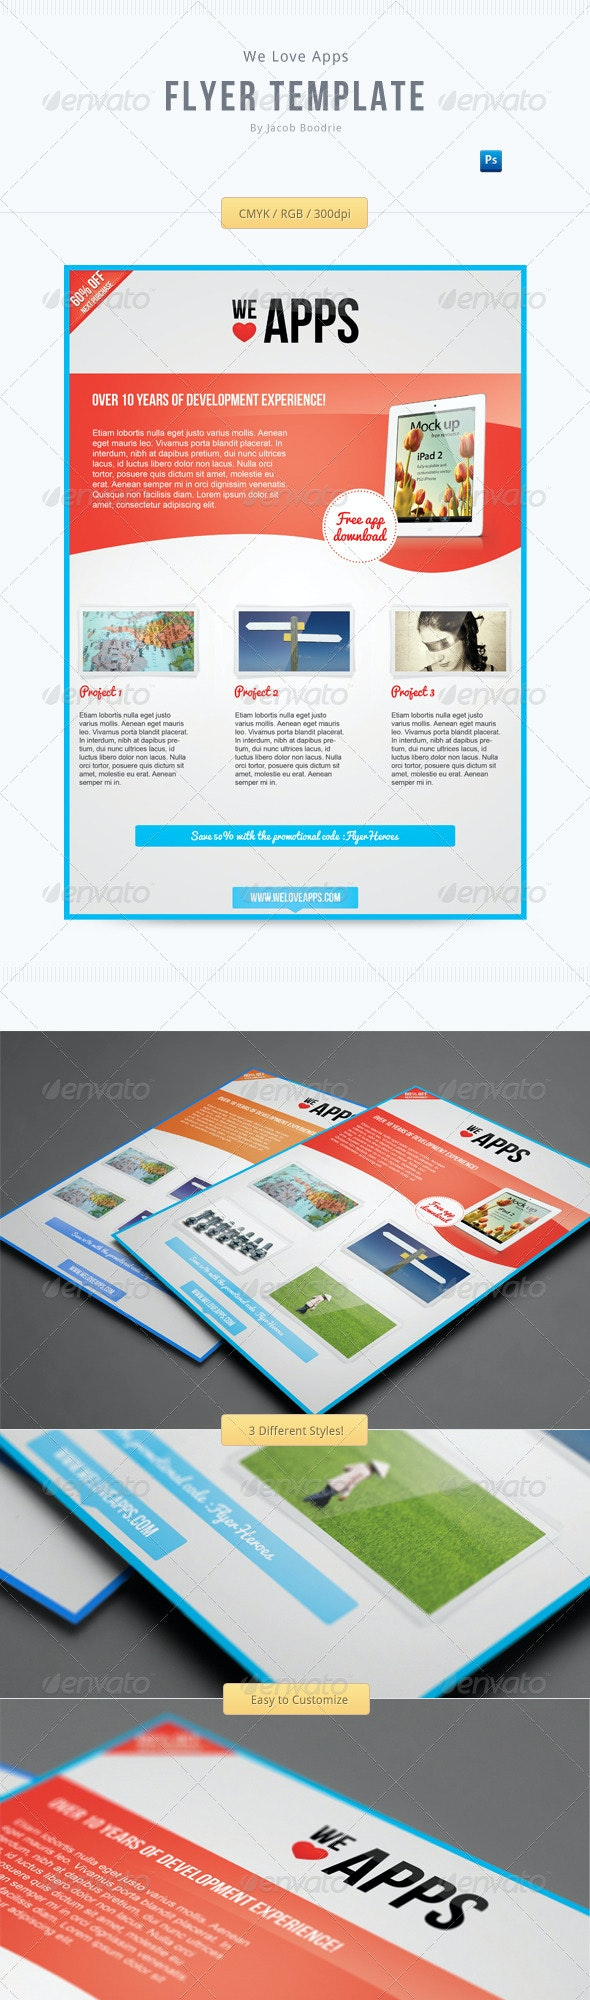 We Love Apps Flyer Template - Commerce Flyers